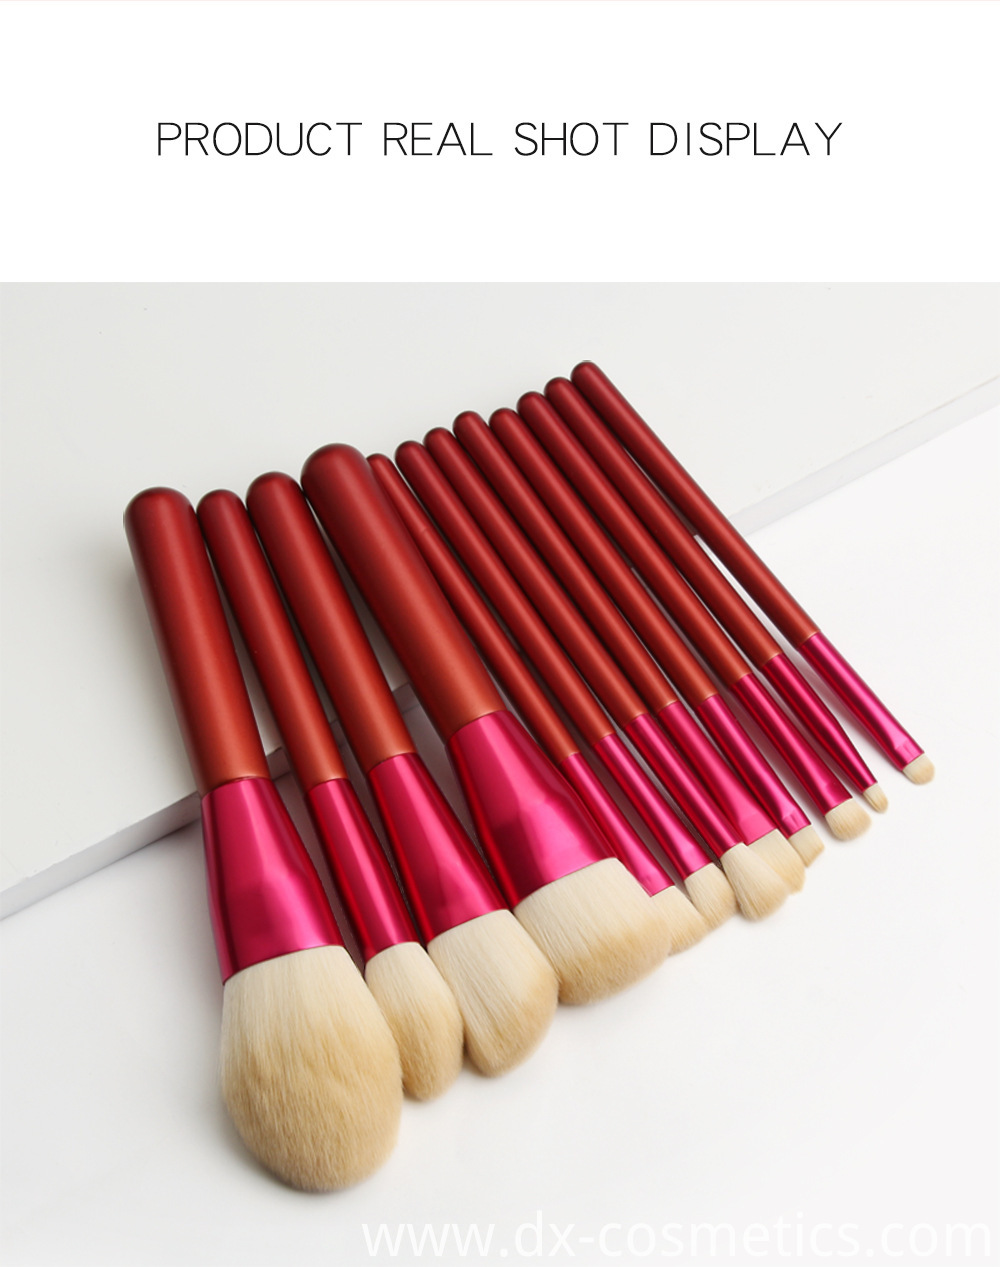 12 PCS Red Handle Makeup Brushes Set Size 7